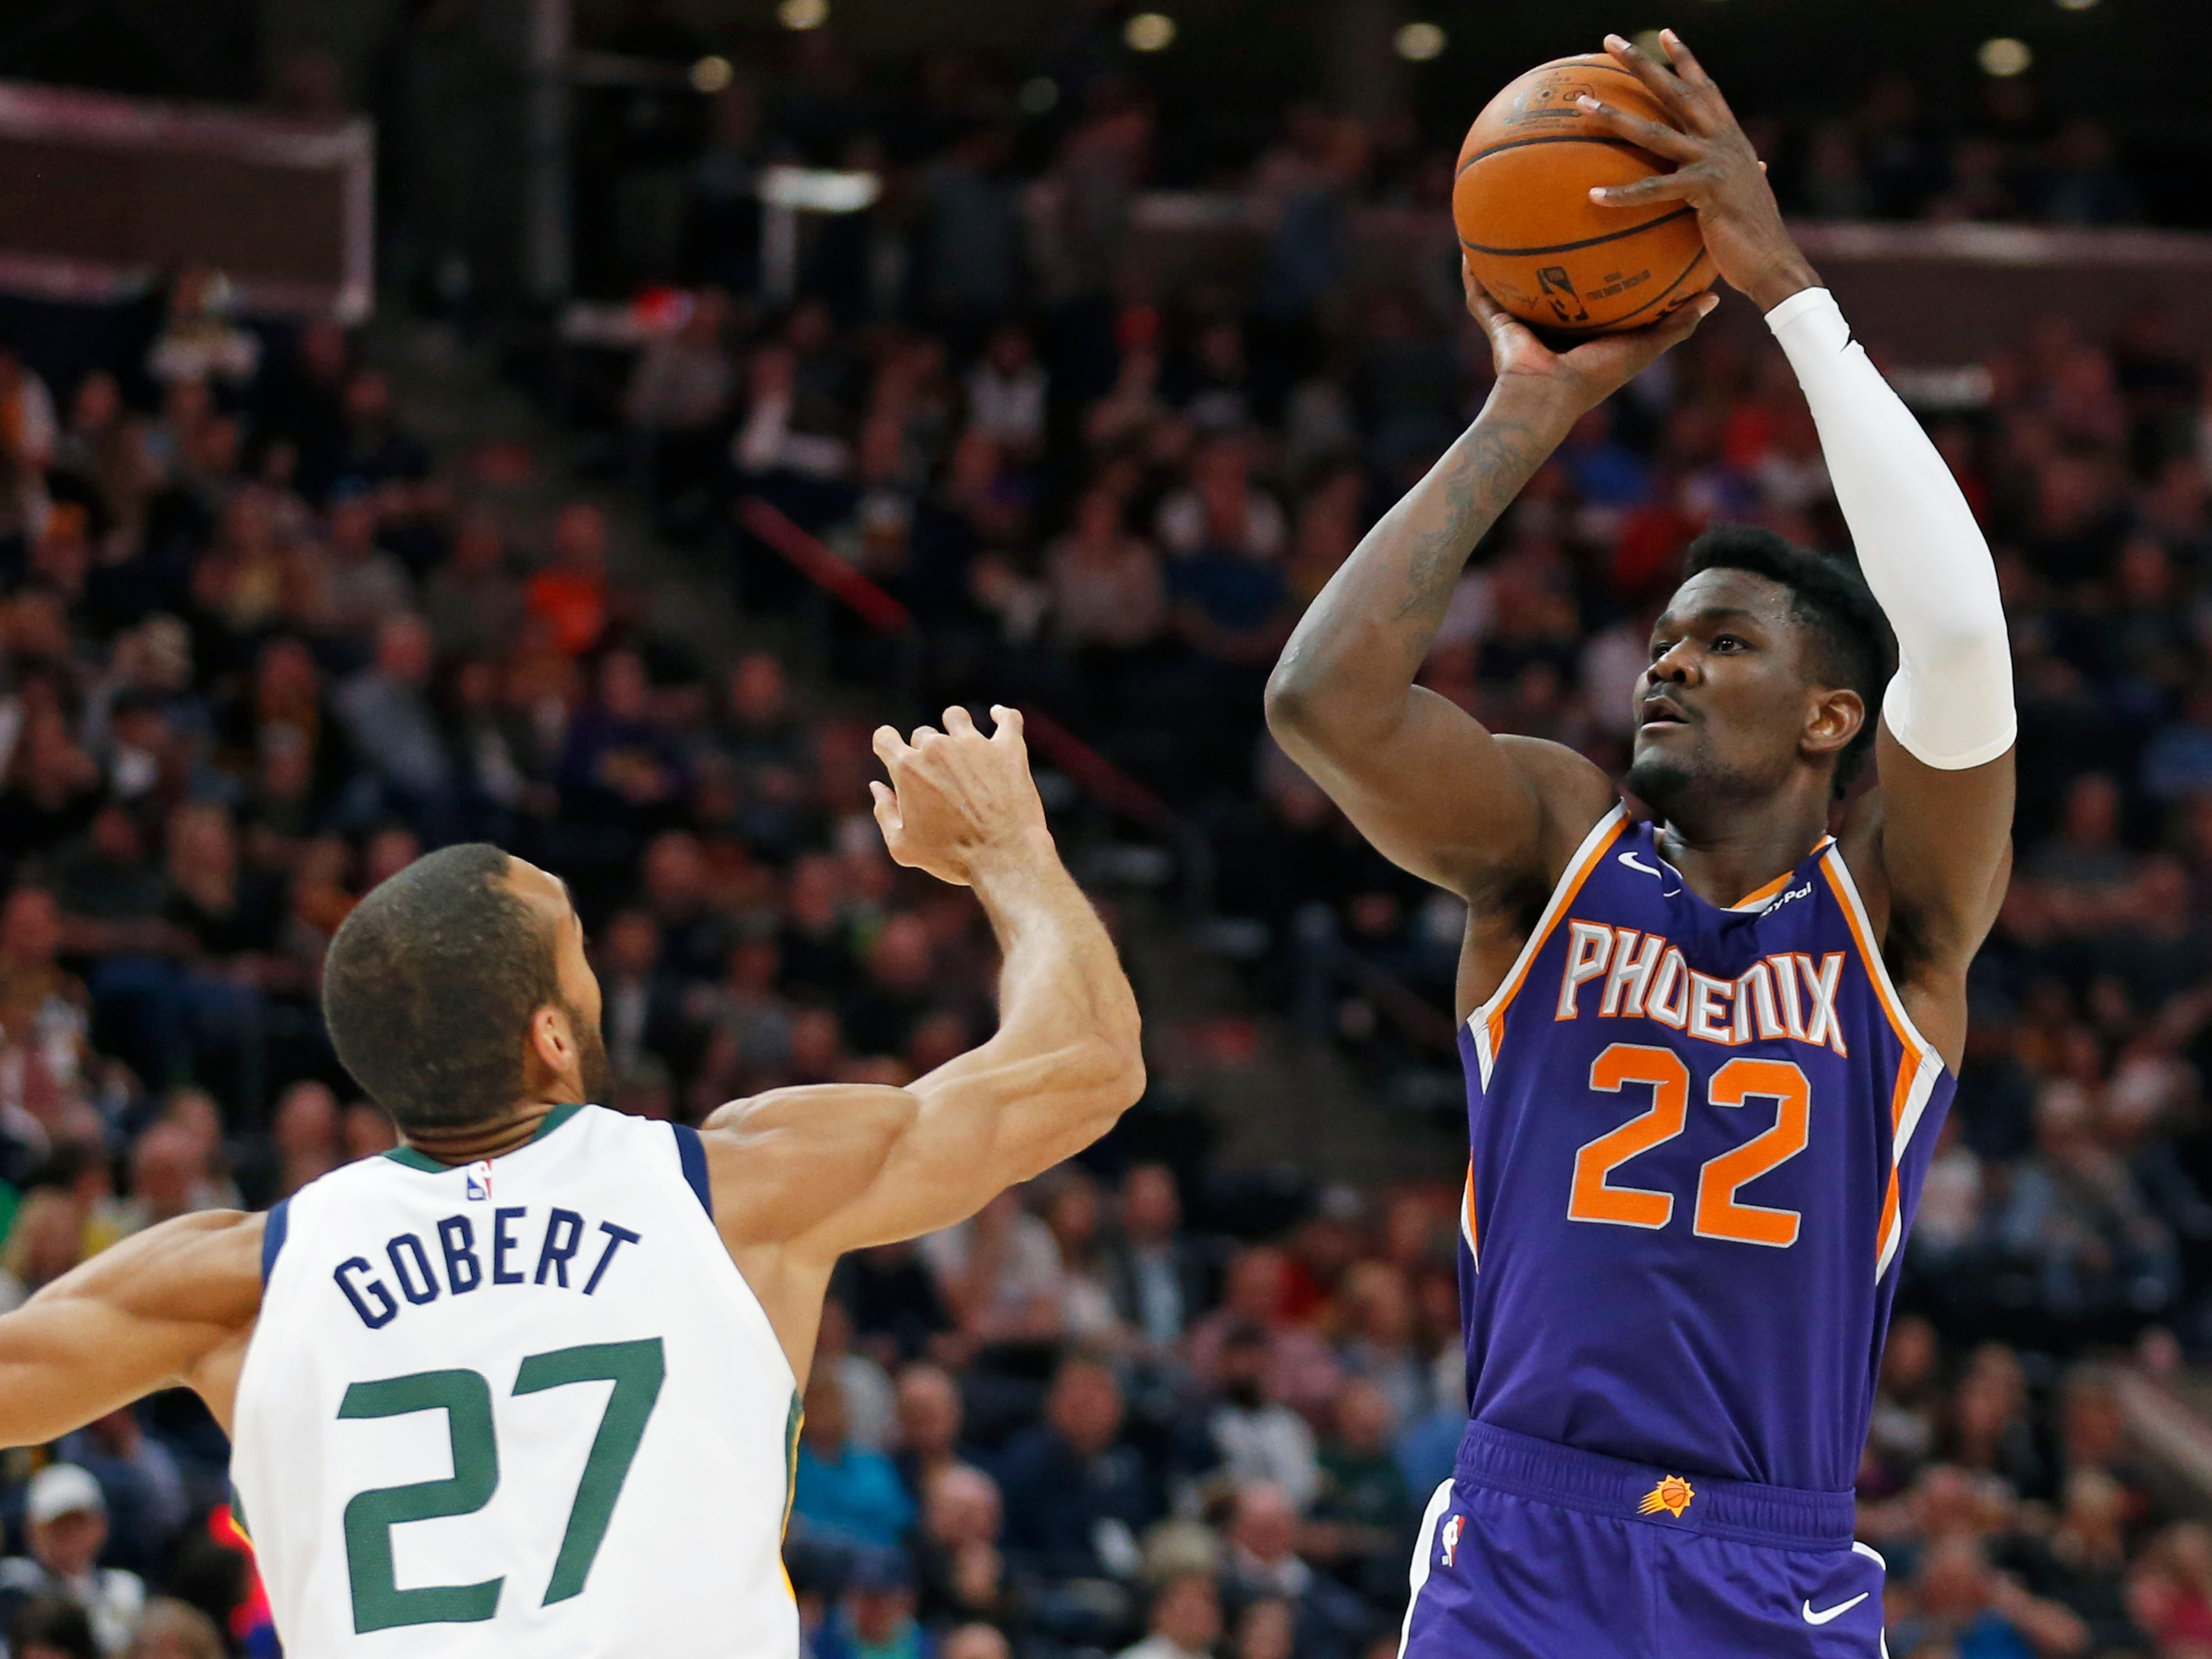 Phoenix Suns center Deandre Ayton (22) shoots as Utah Jazz center Rudy Gobert (27) defends during the first half of an NBA basketball game Monday, March 25, 2019, in Salt Lake City.